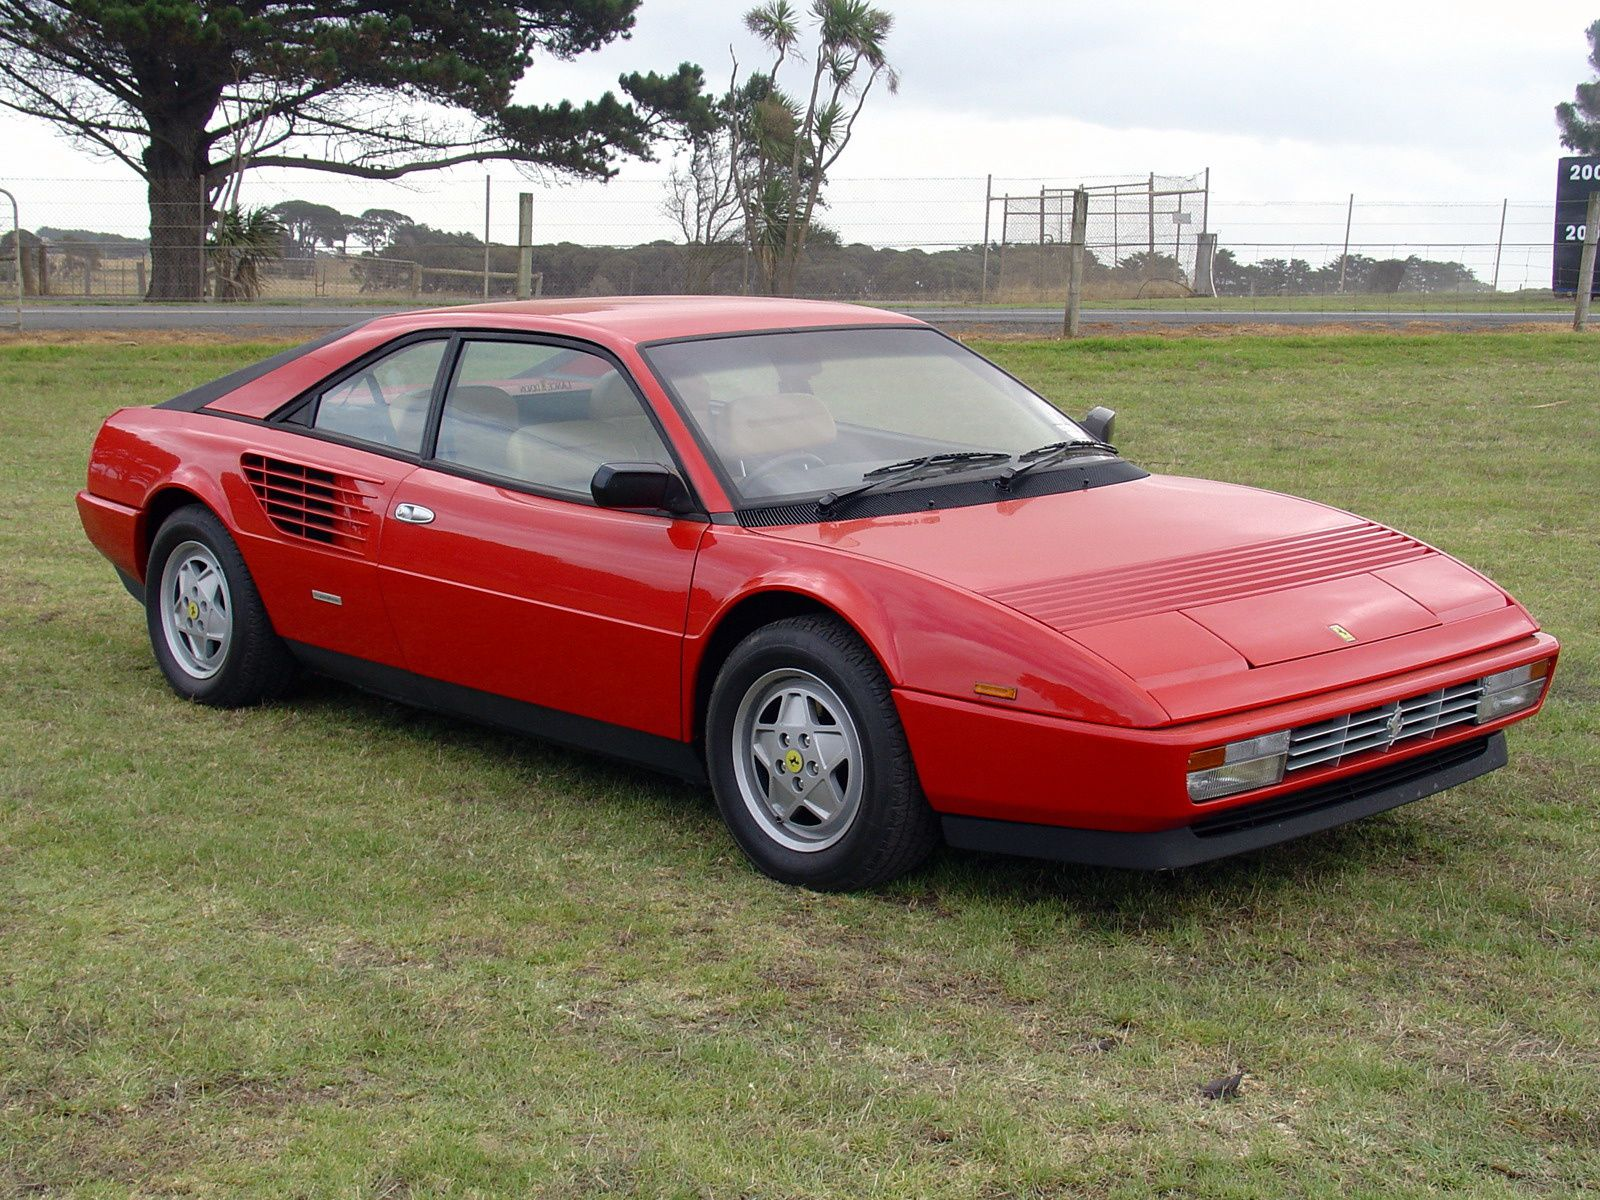 1980 1993 ferrari mondial 8 coup qv t dark cars wallpapers. Black Bedroom Furniture Sets. Home Design Ideas